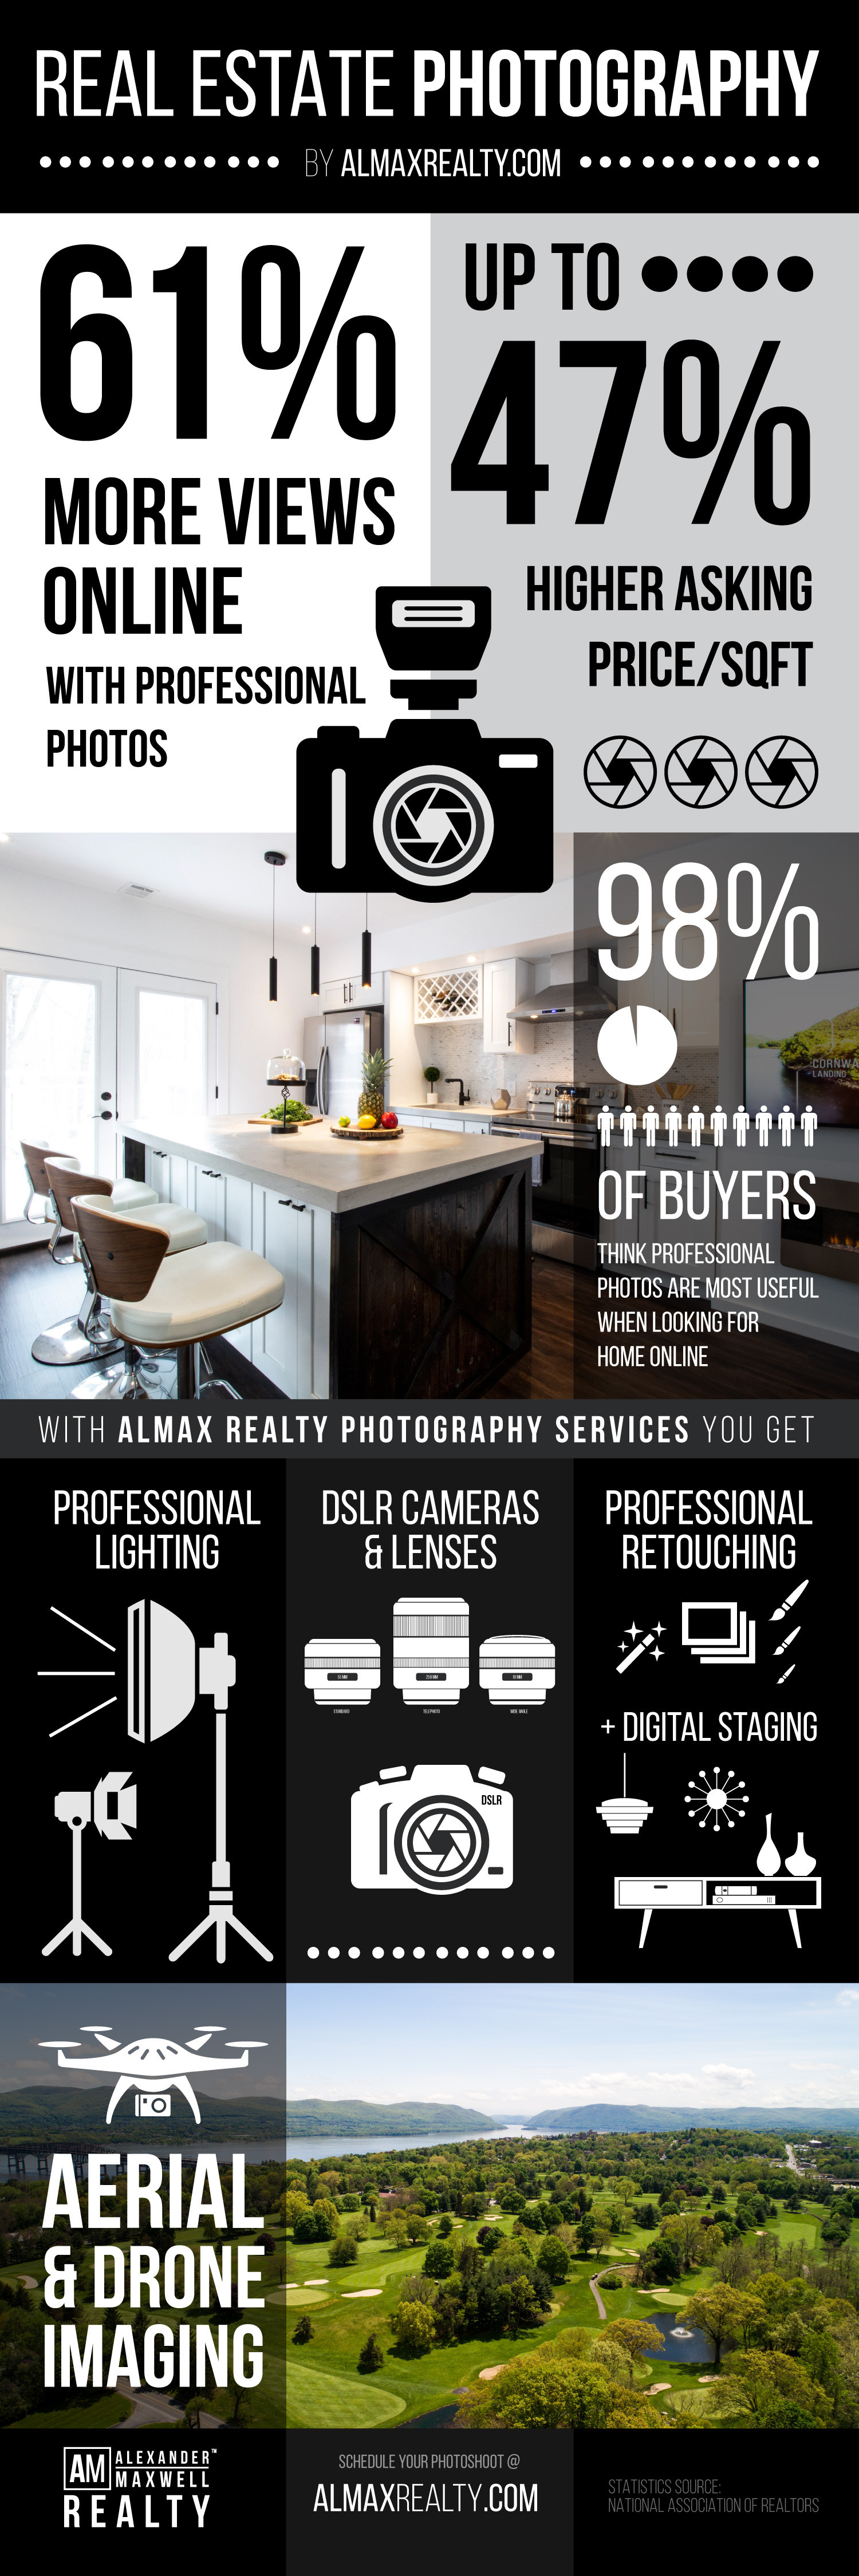 Hudson Valley Real Estate Photography - Infographic by Alexander Maxwell Realty Infographic